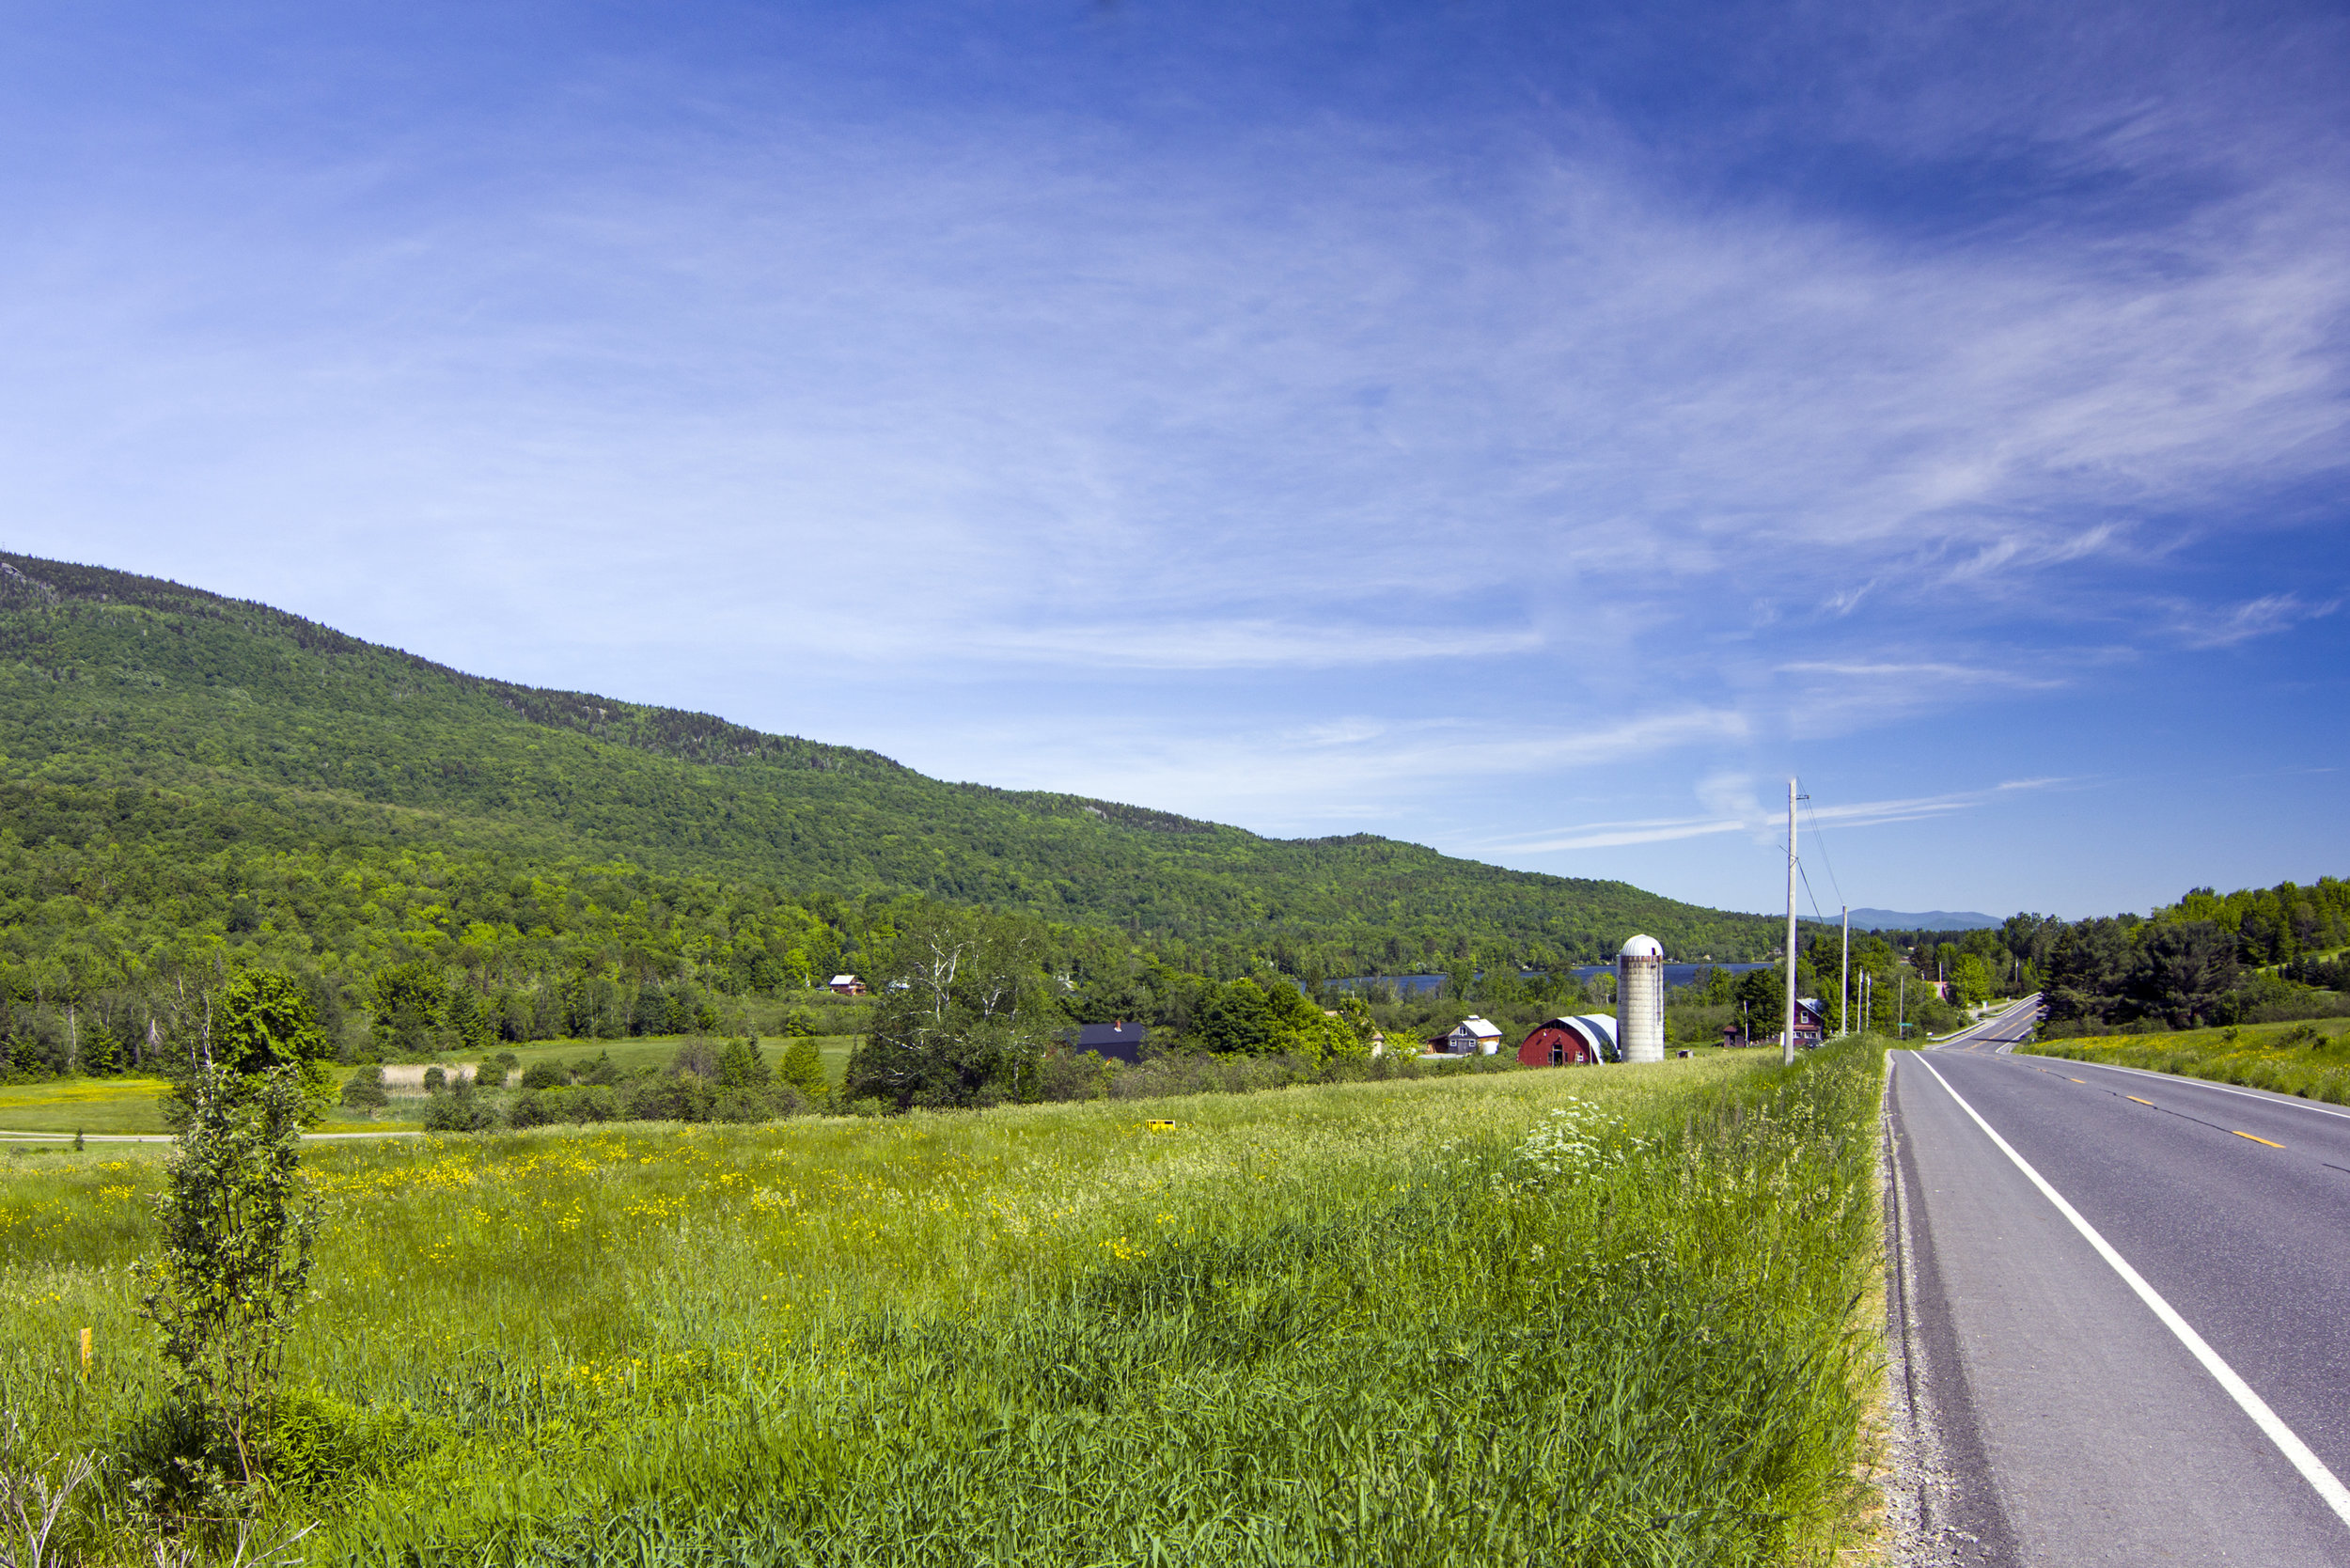 21-2017-06-14 IMG_3740 Dumont From the beginning of the driveway.jpg